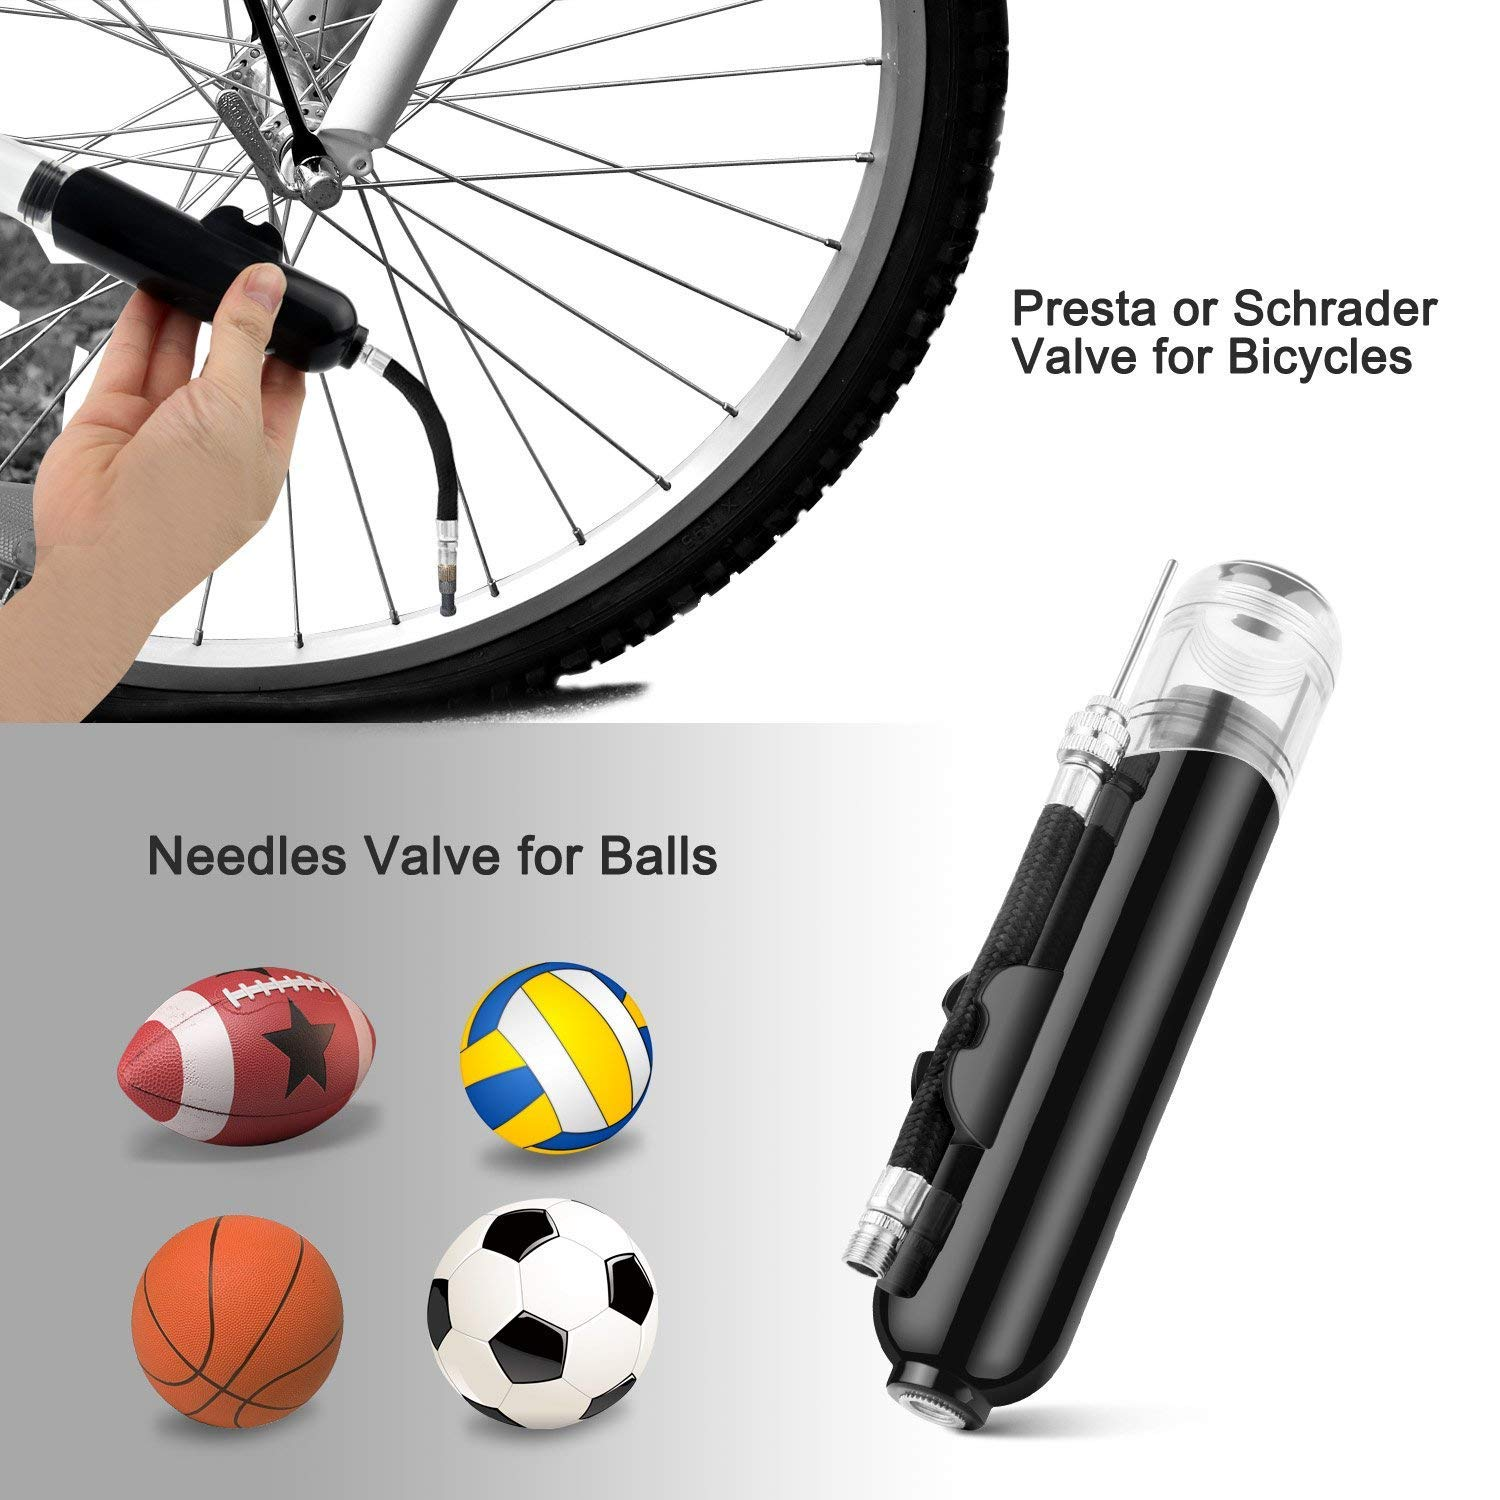 Presta and Schrader Valve JRing Dual Action Ball Pump Volleyball Balloons Basketball Mini Bicycle Tyre Inflator Air Pump with 4 Needles and 3 Nozzles for Soccer Ball Bicycles